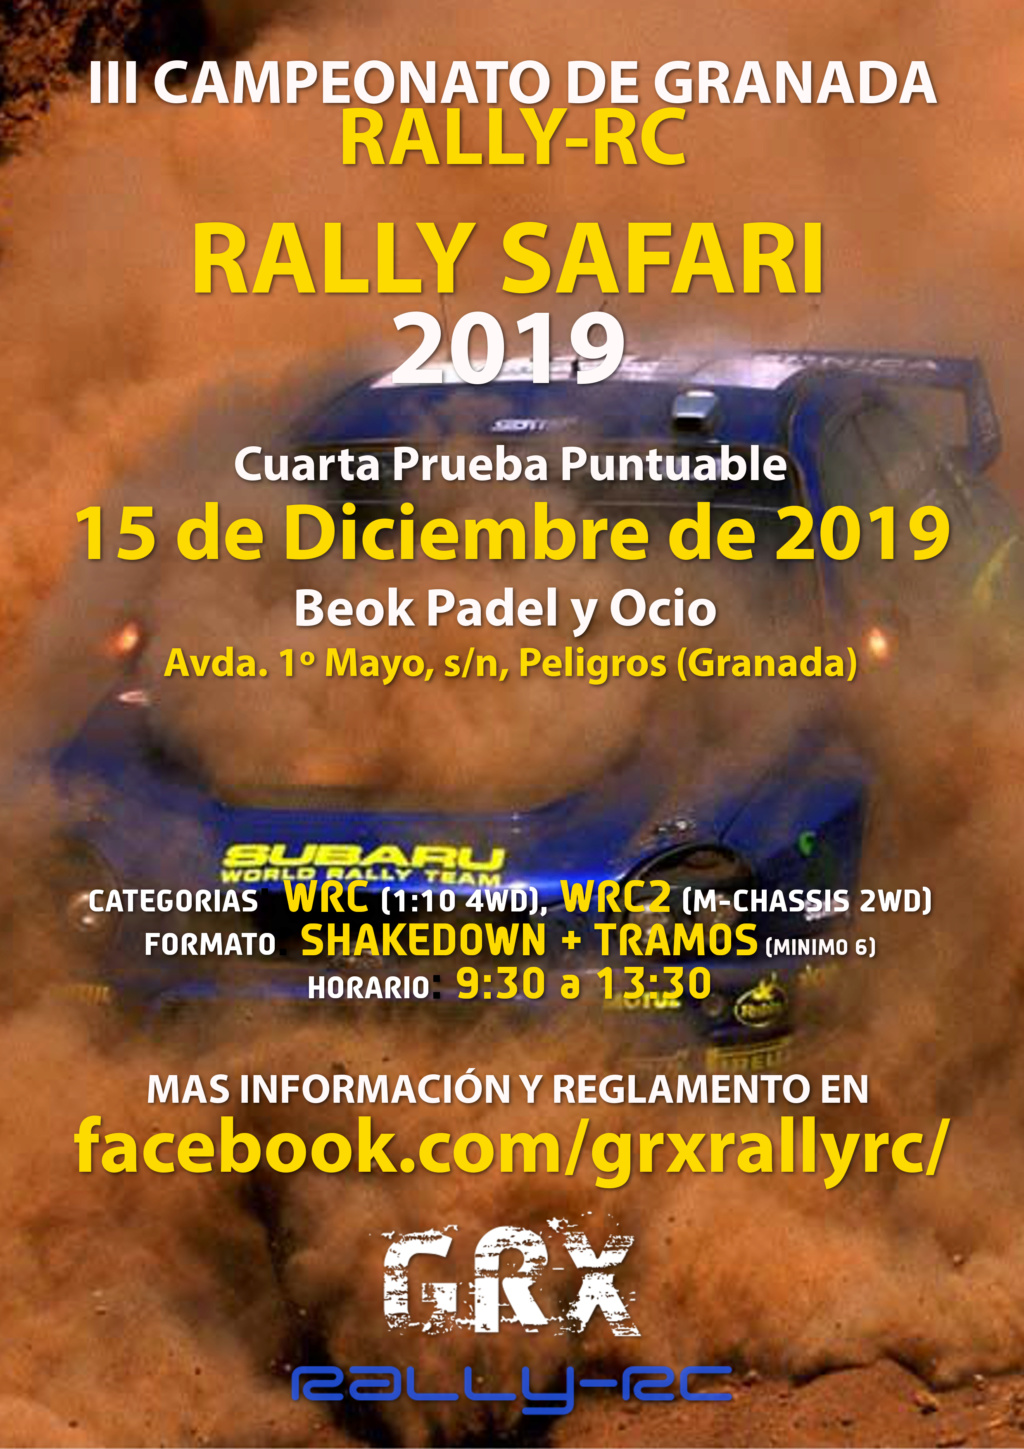 RALLY-RC 1/10 - Página 3 Cartel10